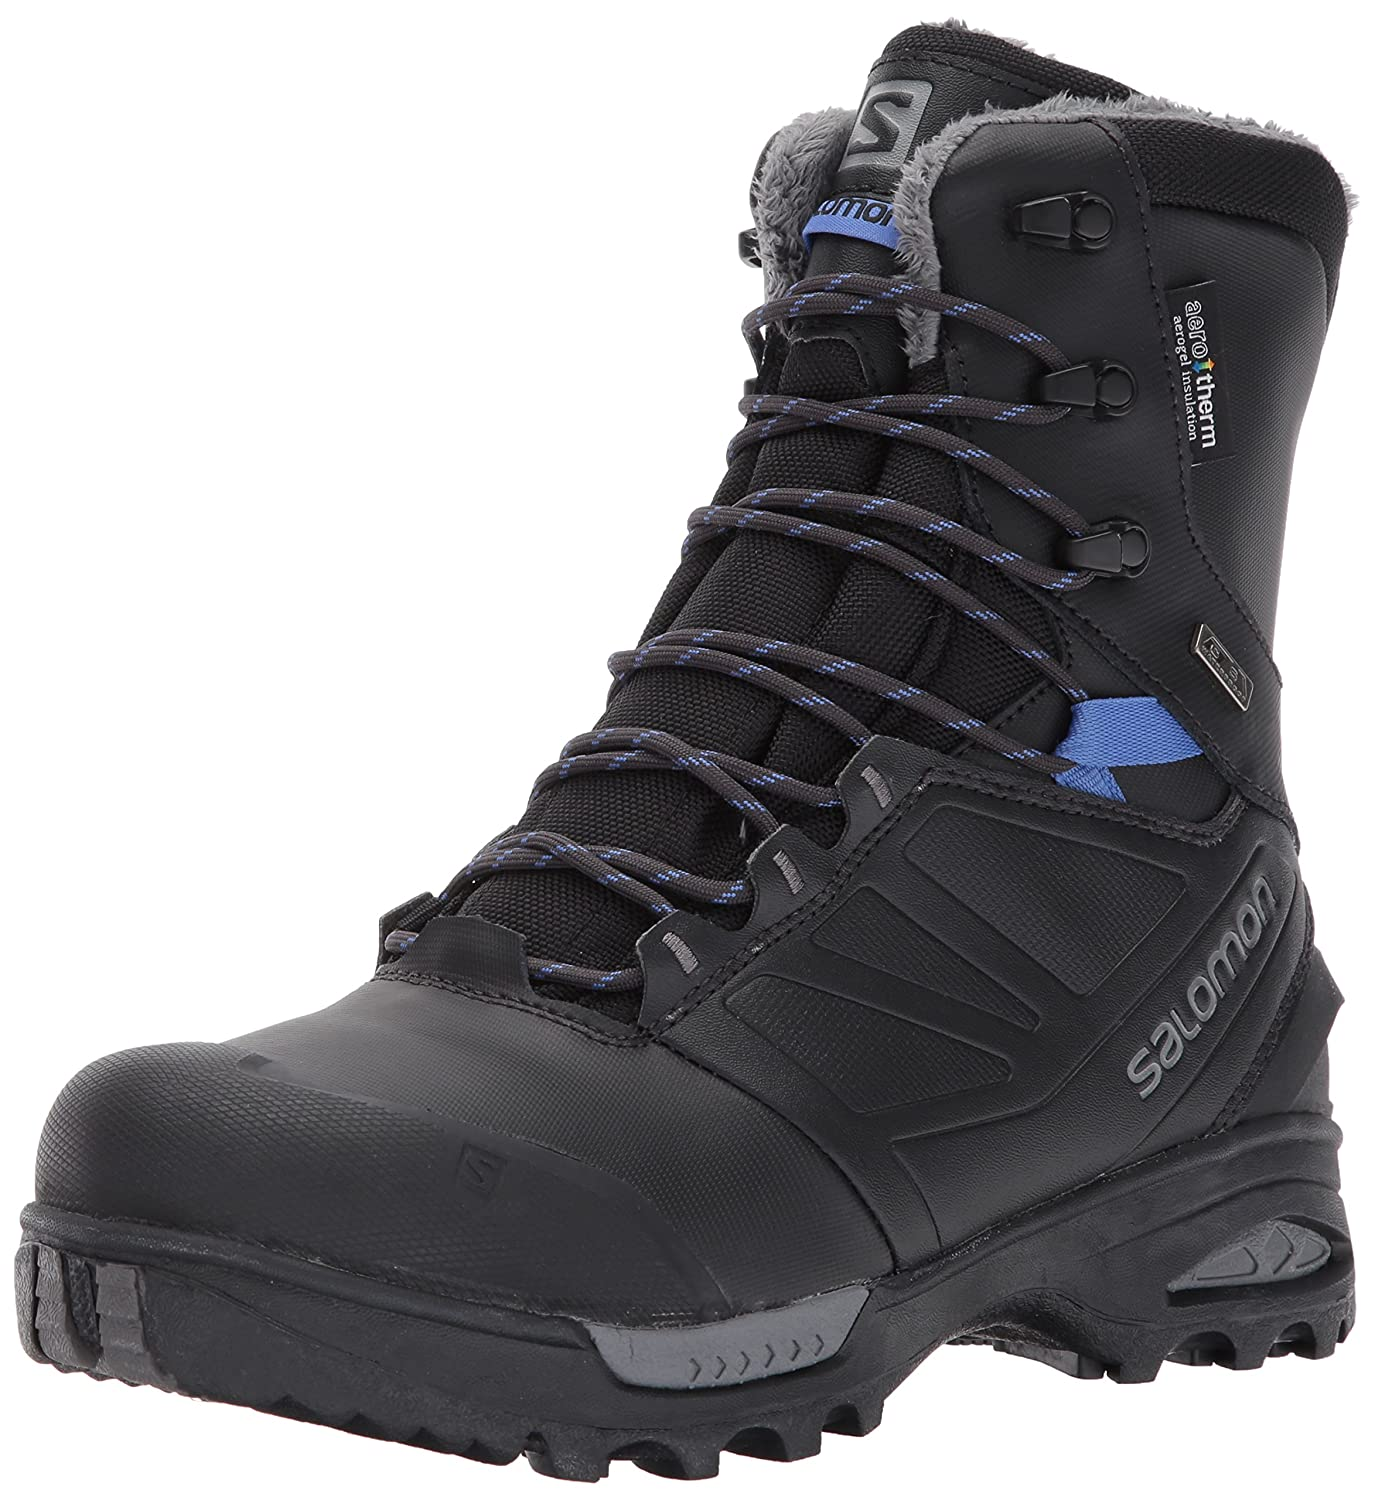 0d878d2784d Salomon Women's Toundra Pro CSWP Winter Boots in Superlight Leather and  Aerogel Insulation